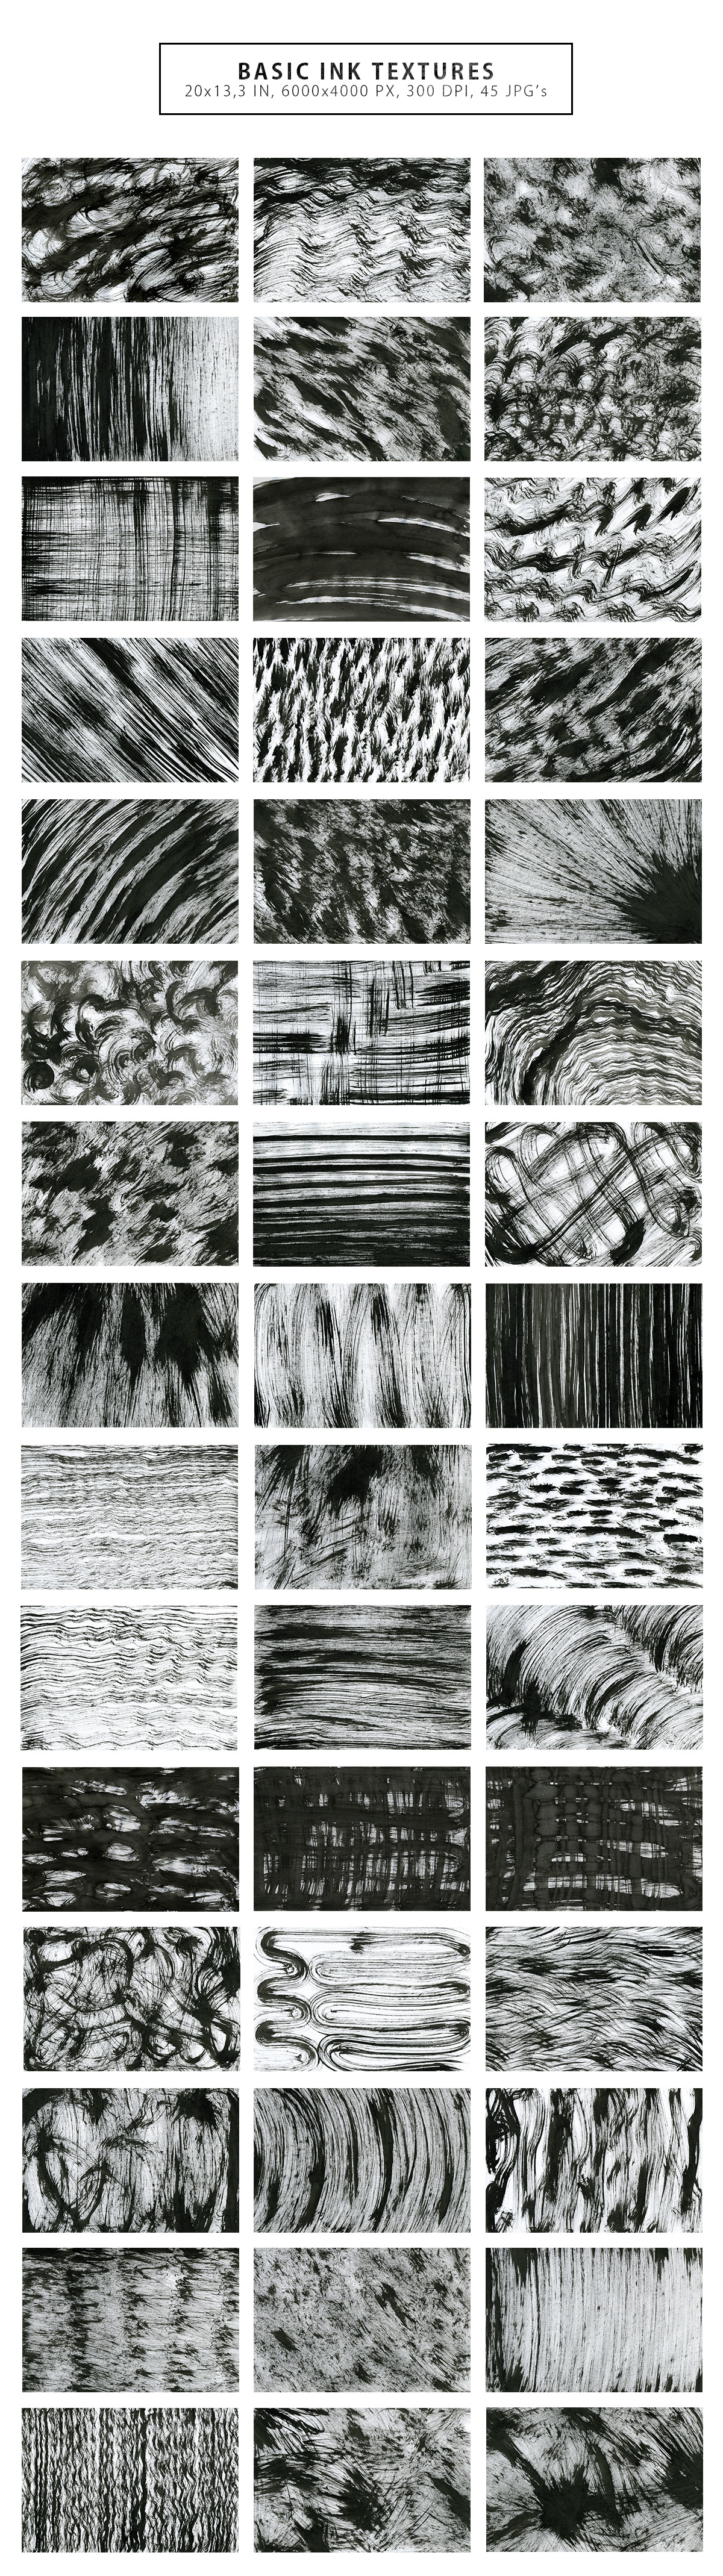 Only Ink & Marble Backgrounds Bundle example image 22